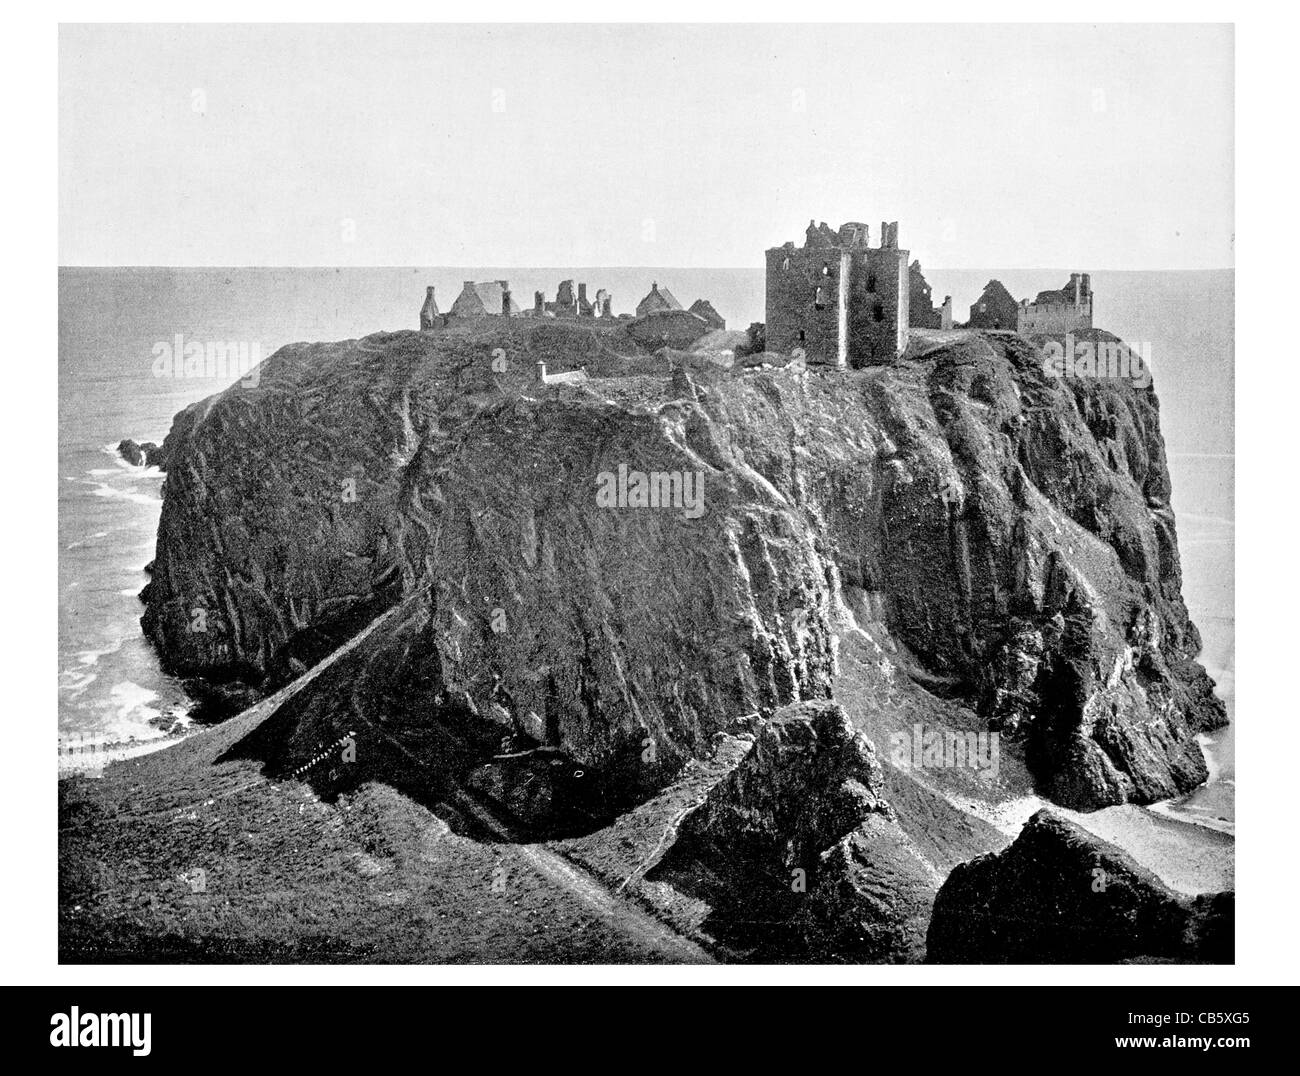 Dunnottar Castle ruined medieval fortress located coast Scotland Middle Ages Enlightenment tourist attraction - Stock Image